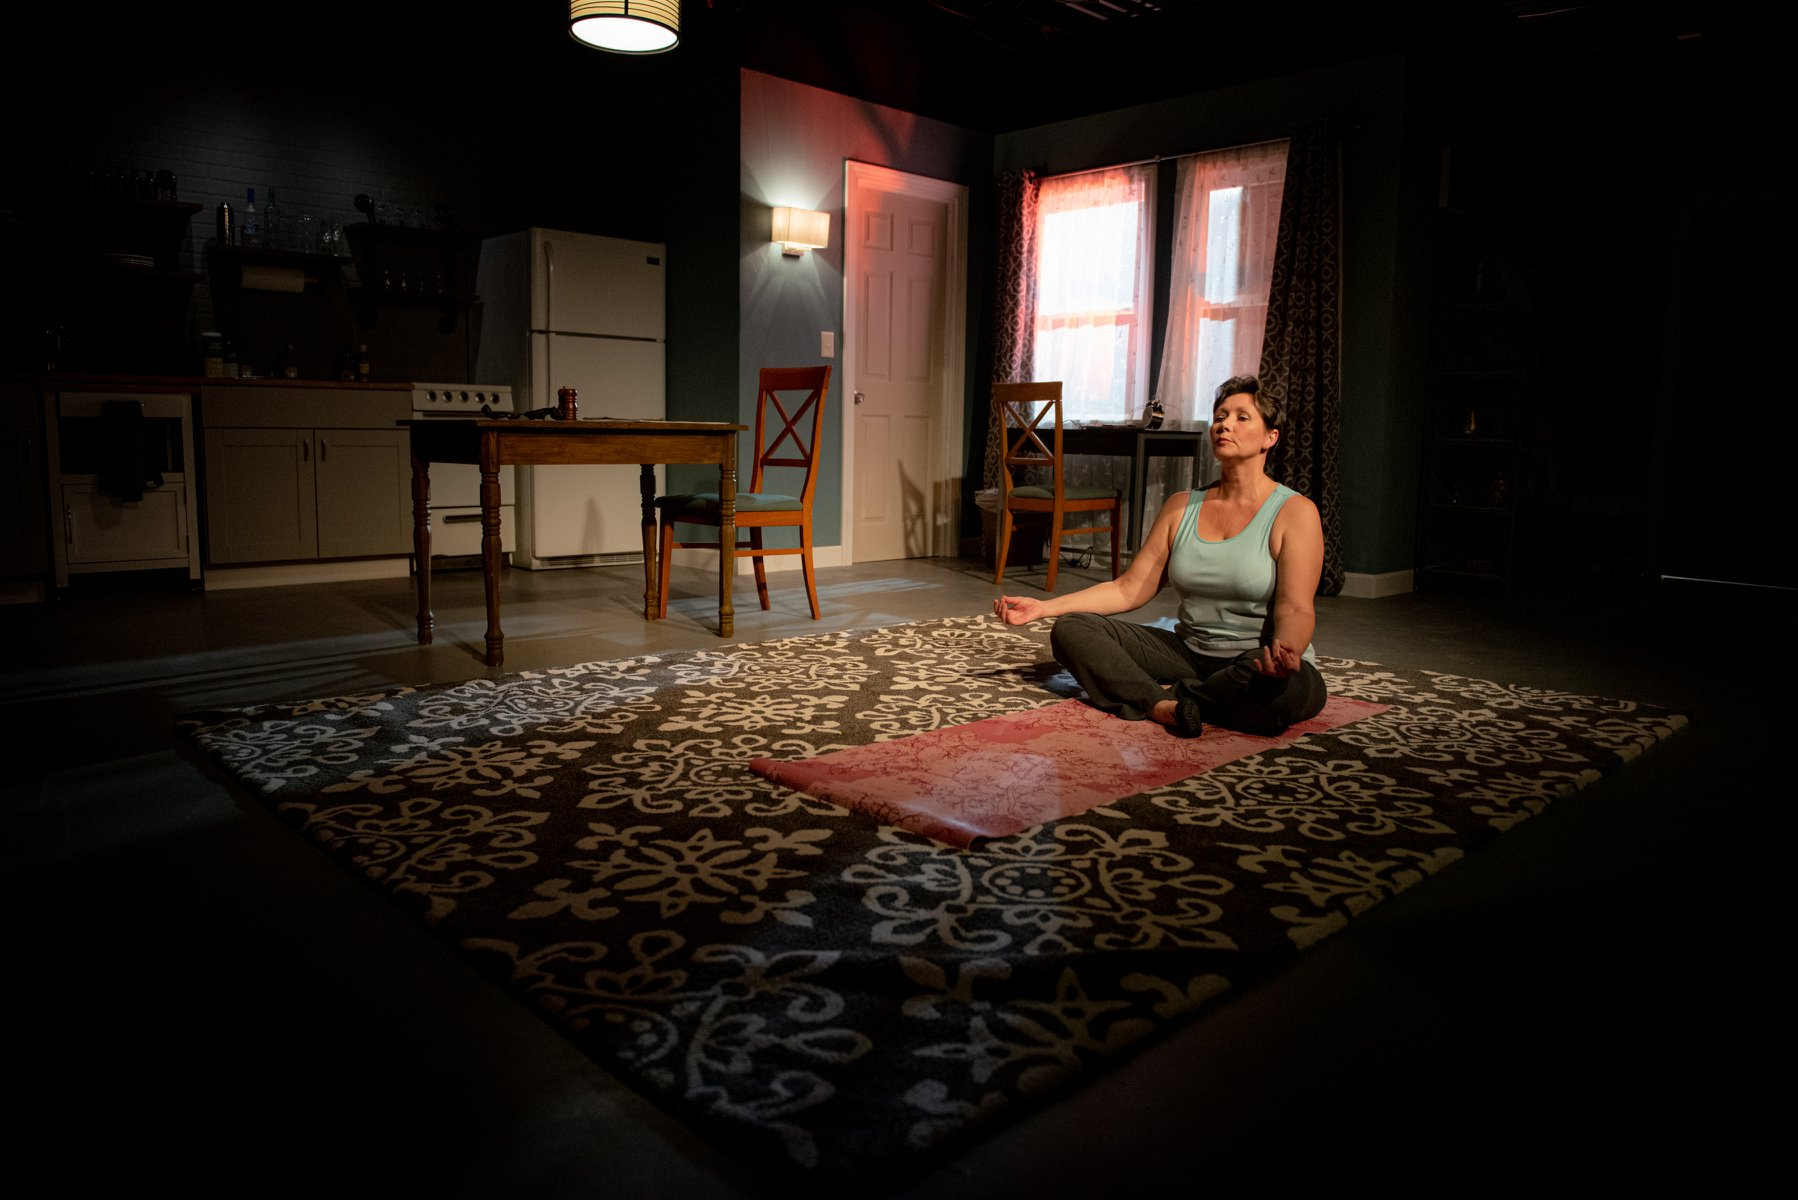 The protagonist meditating in a dark room.